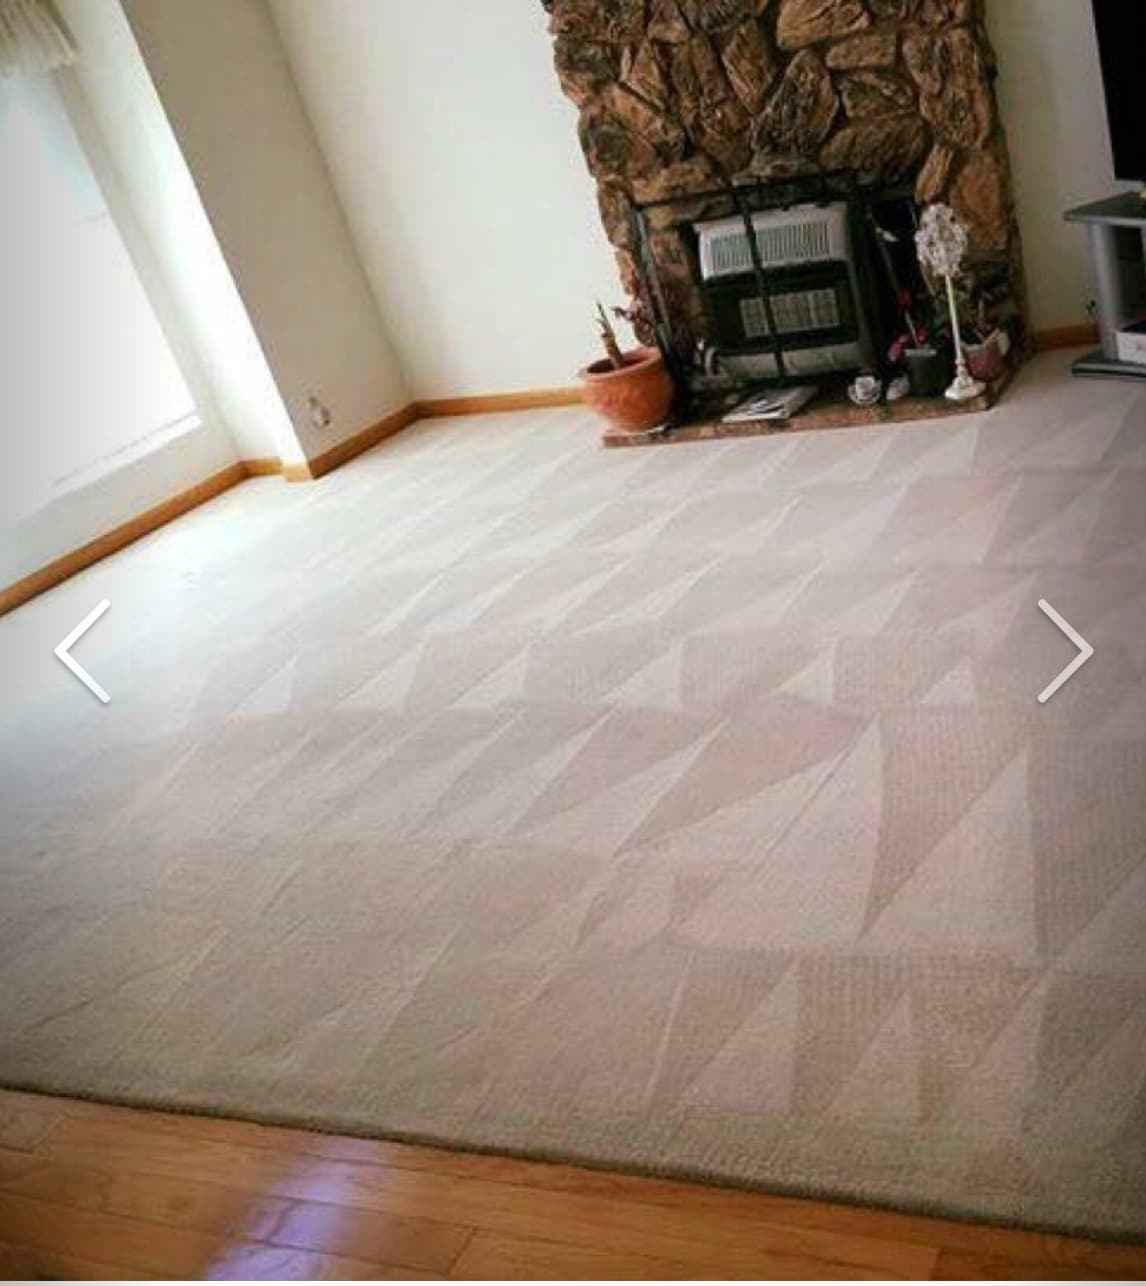 Dalux Carpet Cleaning & Upholstery Service